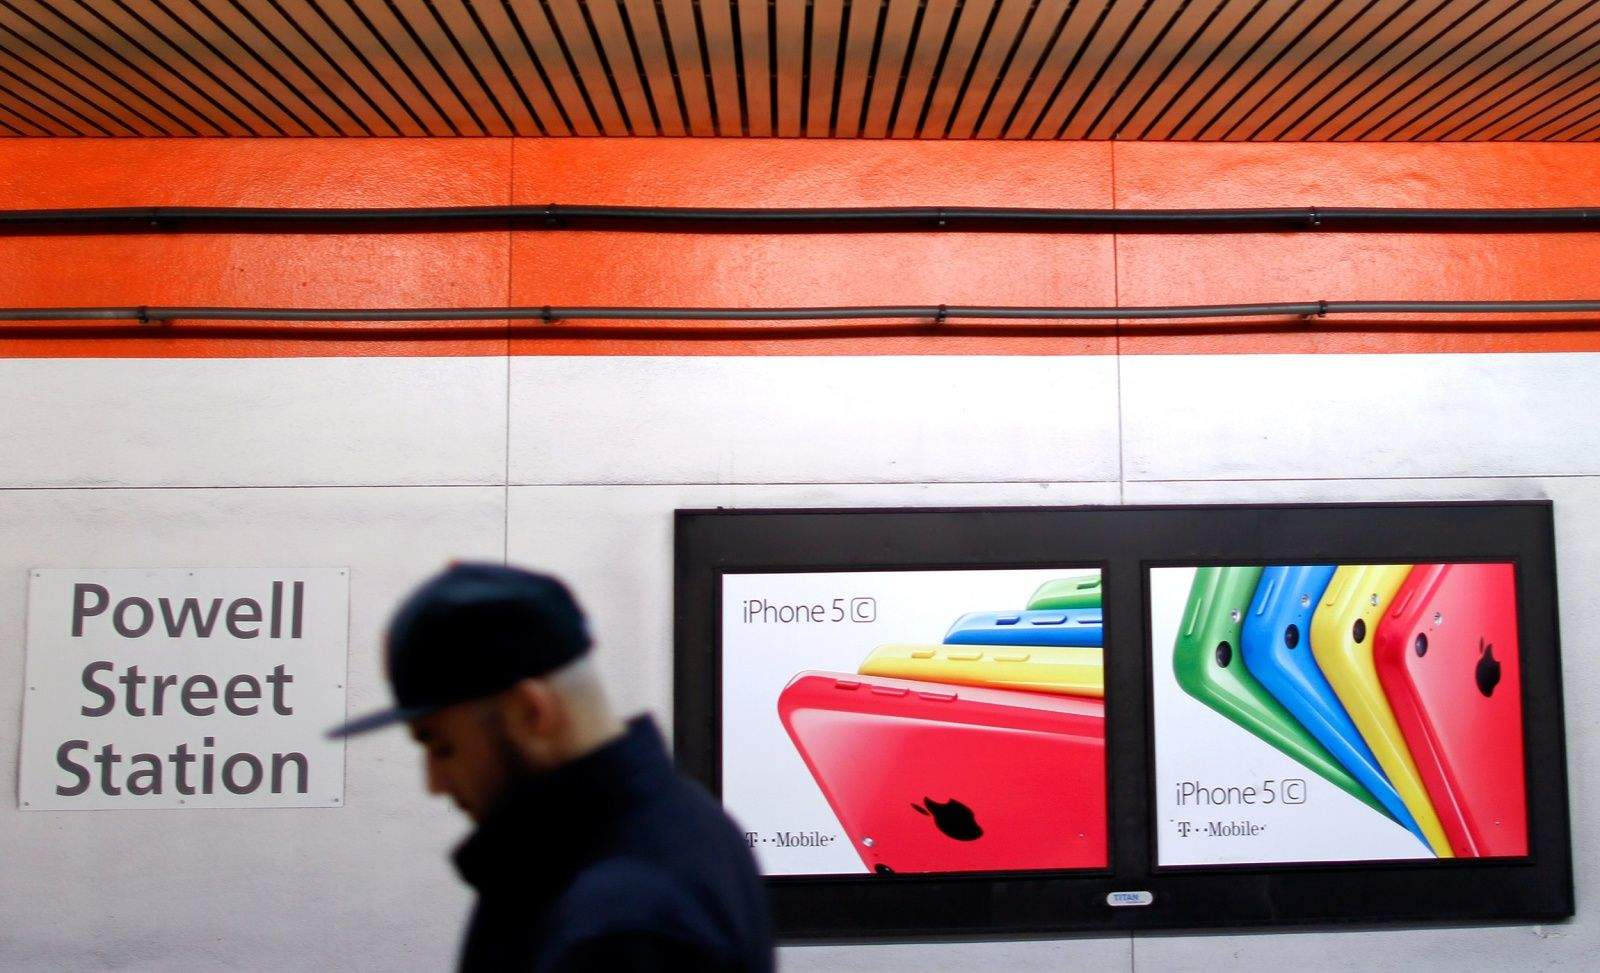 Apple iPhone 5c advertisment in the Powell Street BART Station in San Francisco, CA. Photo: Jim Merithew/Cult of Mac